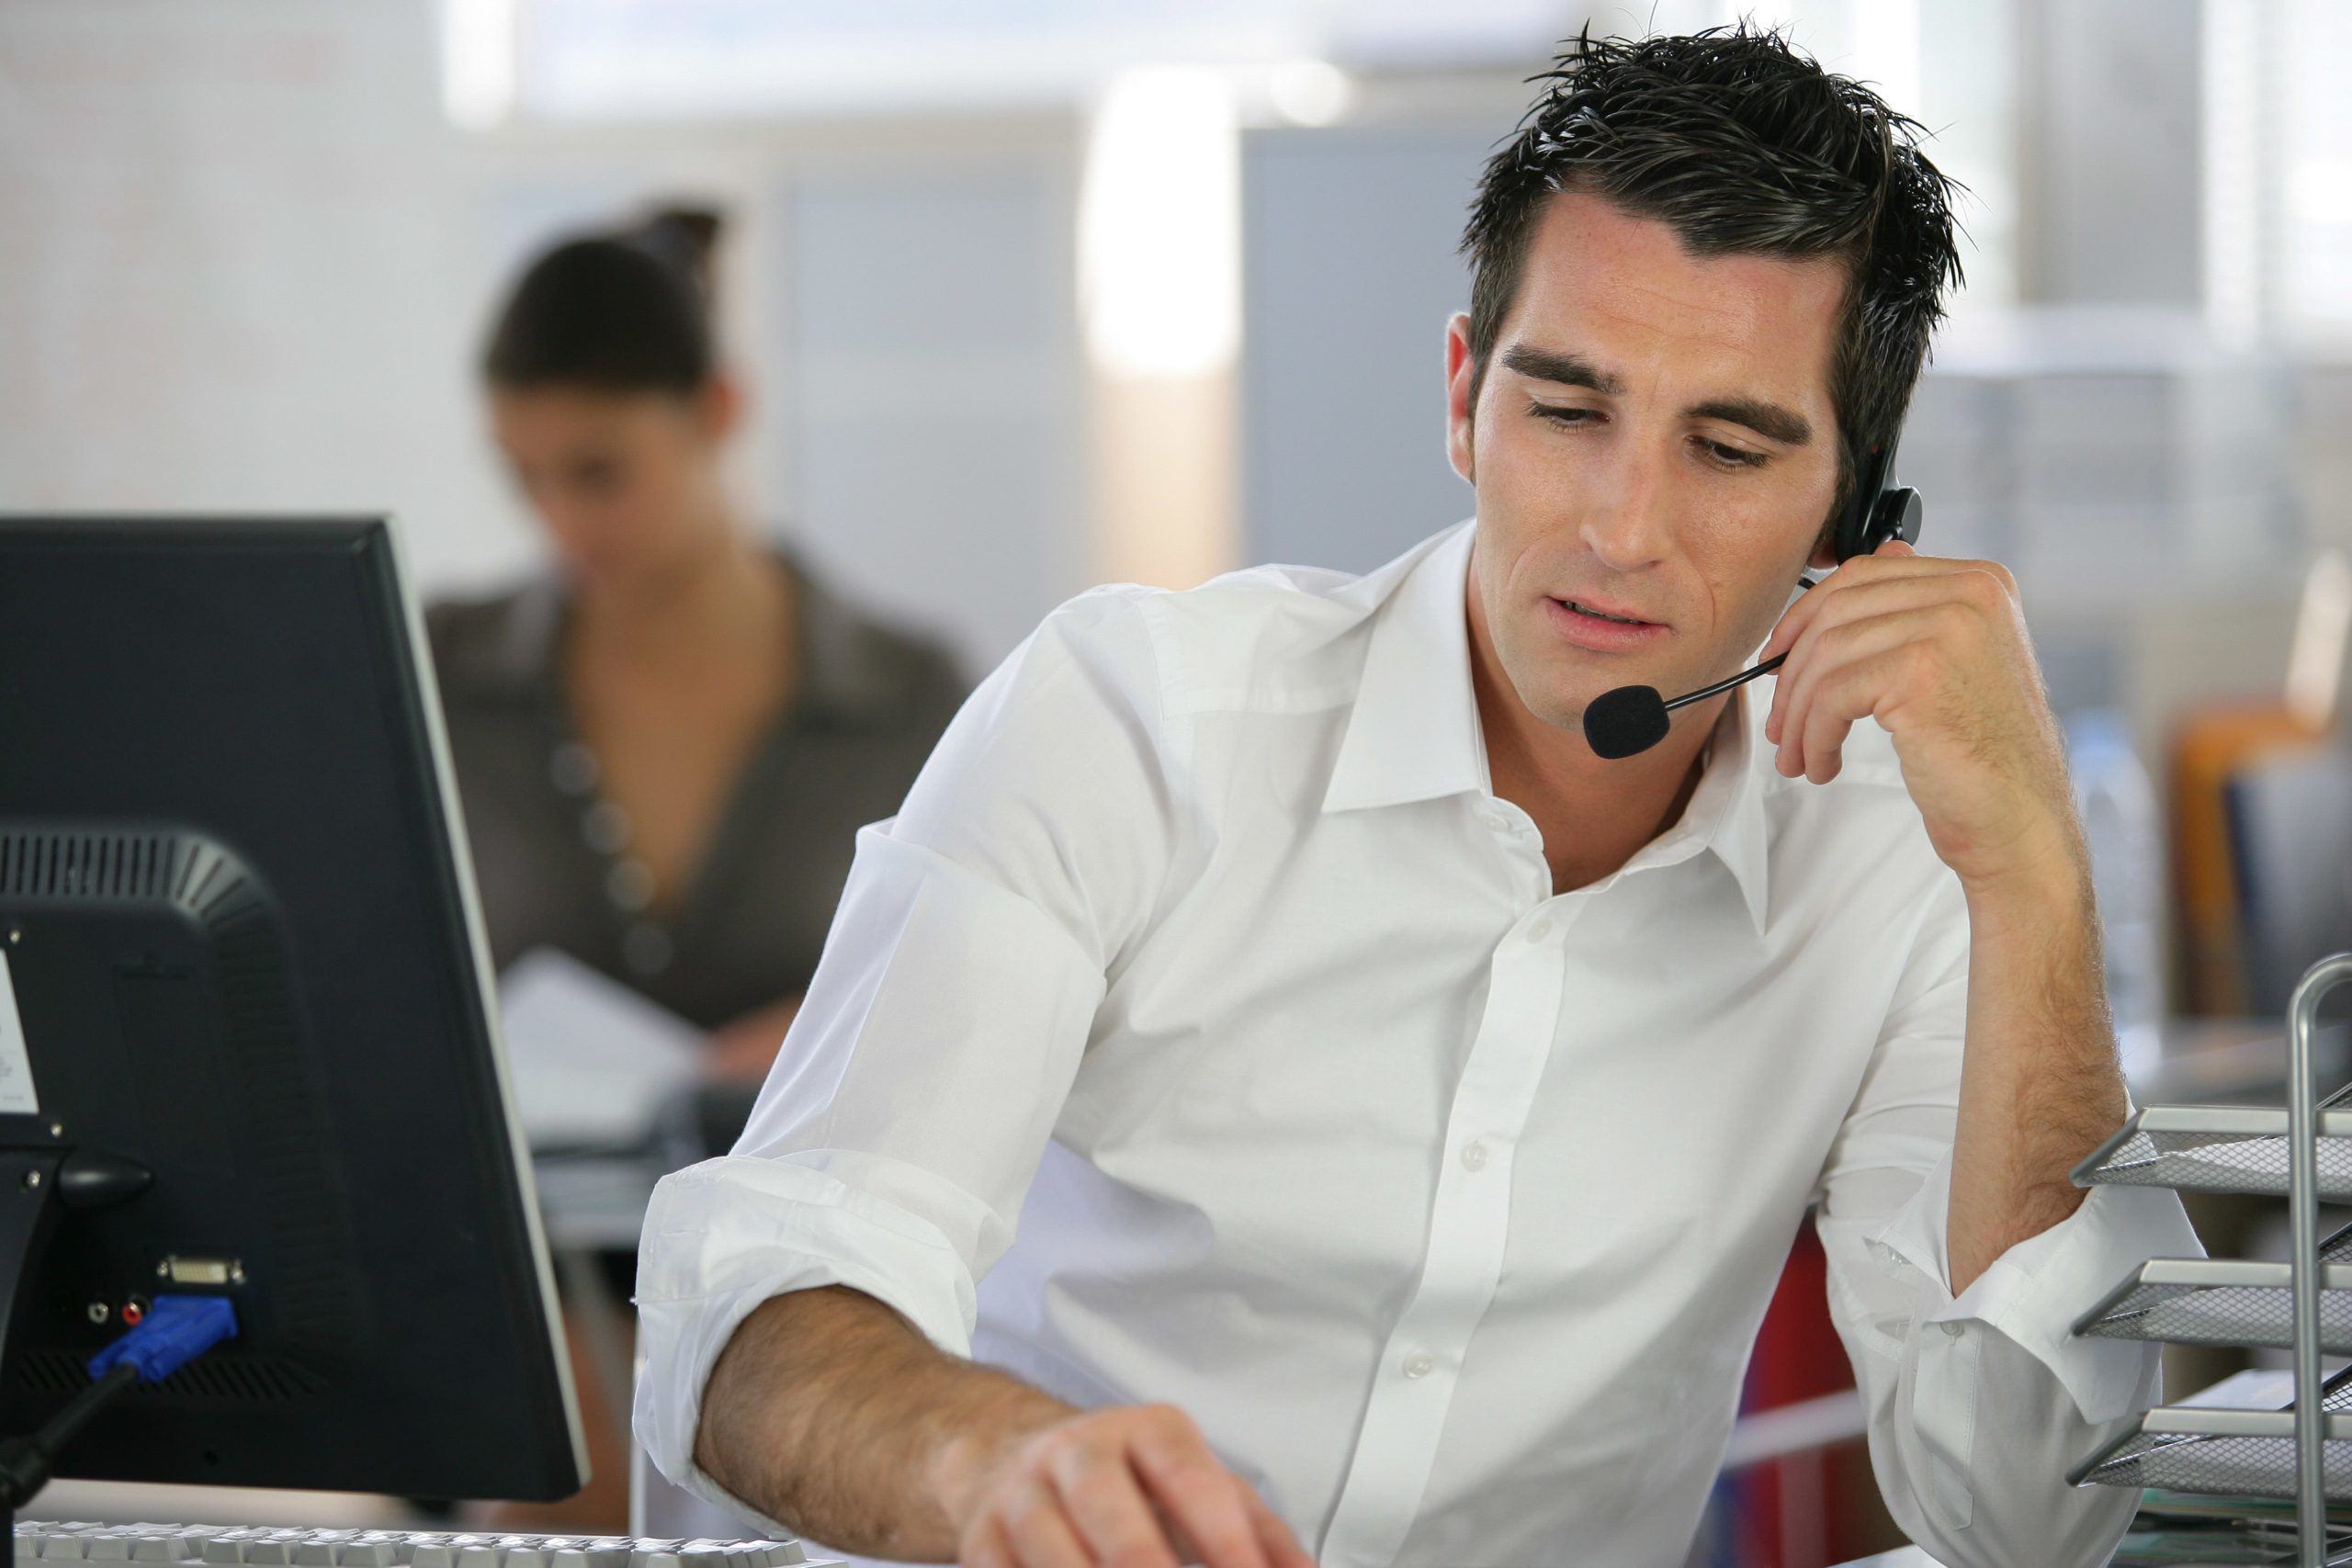 Call centre agent providing customer support over the phone.